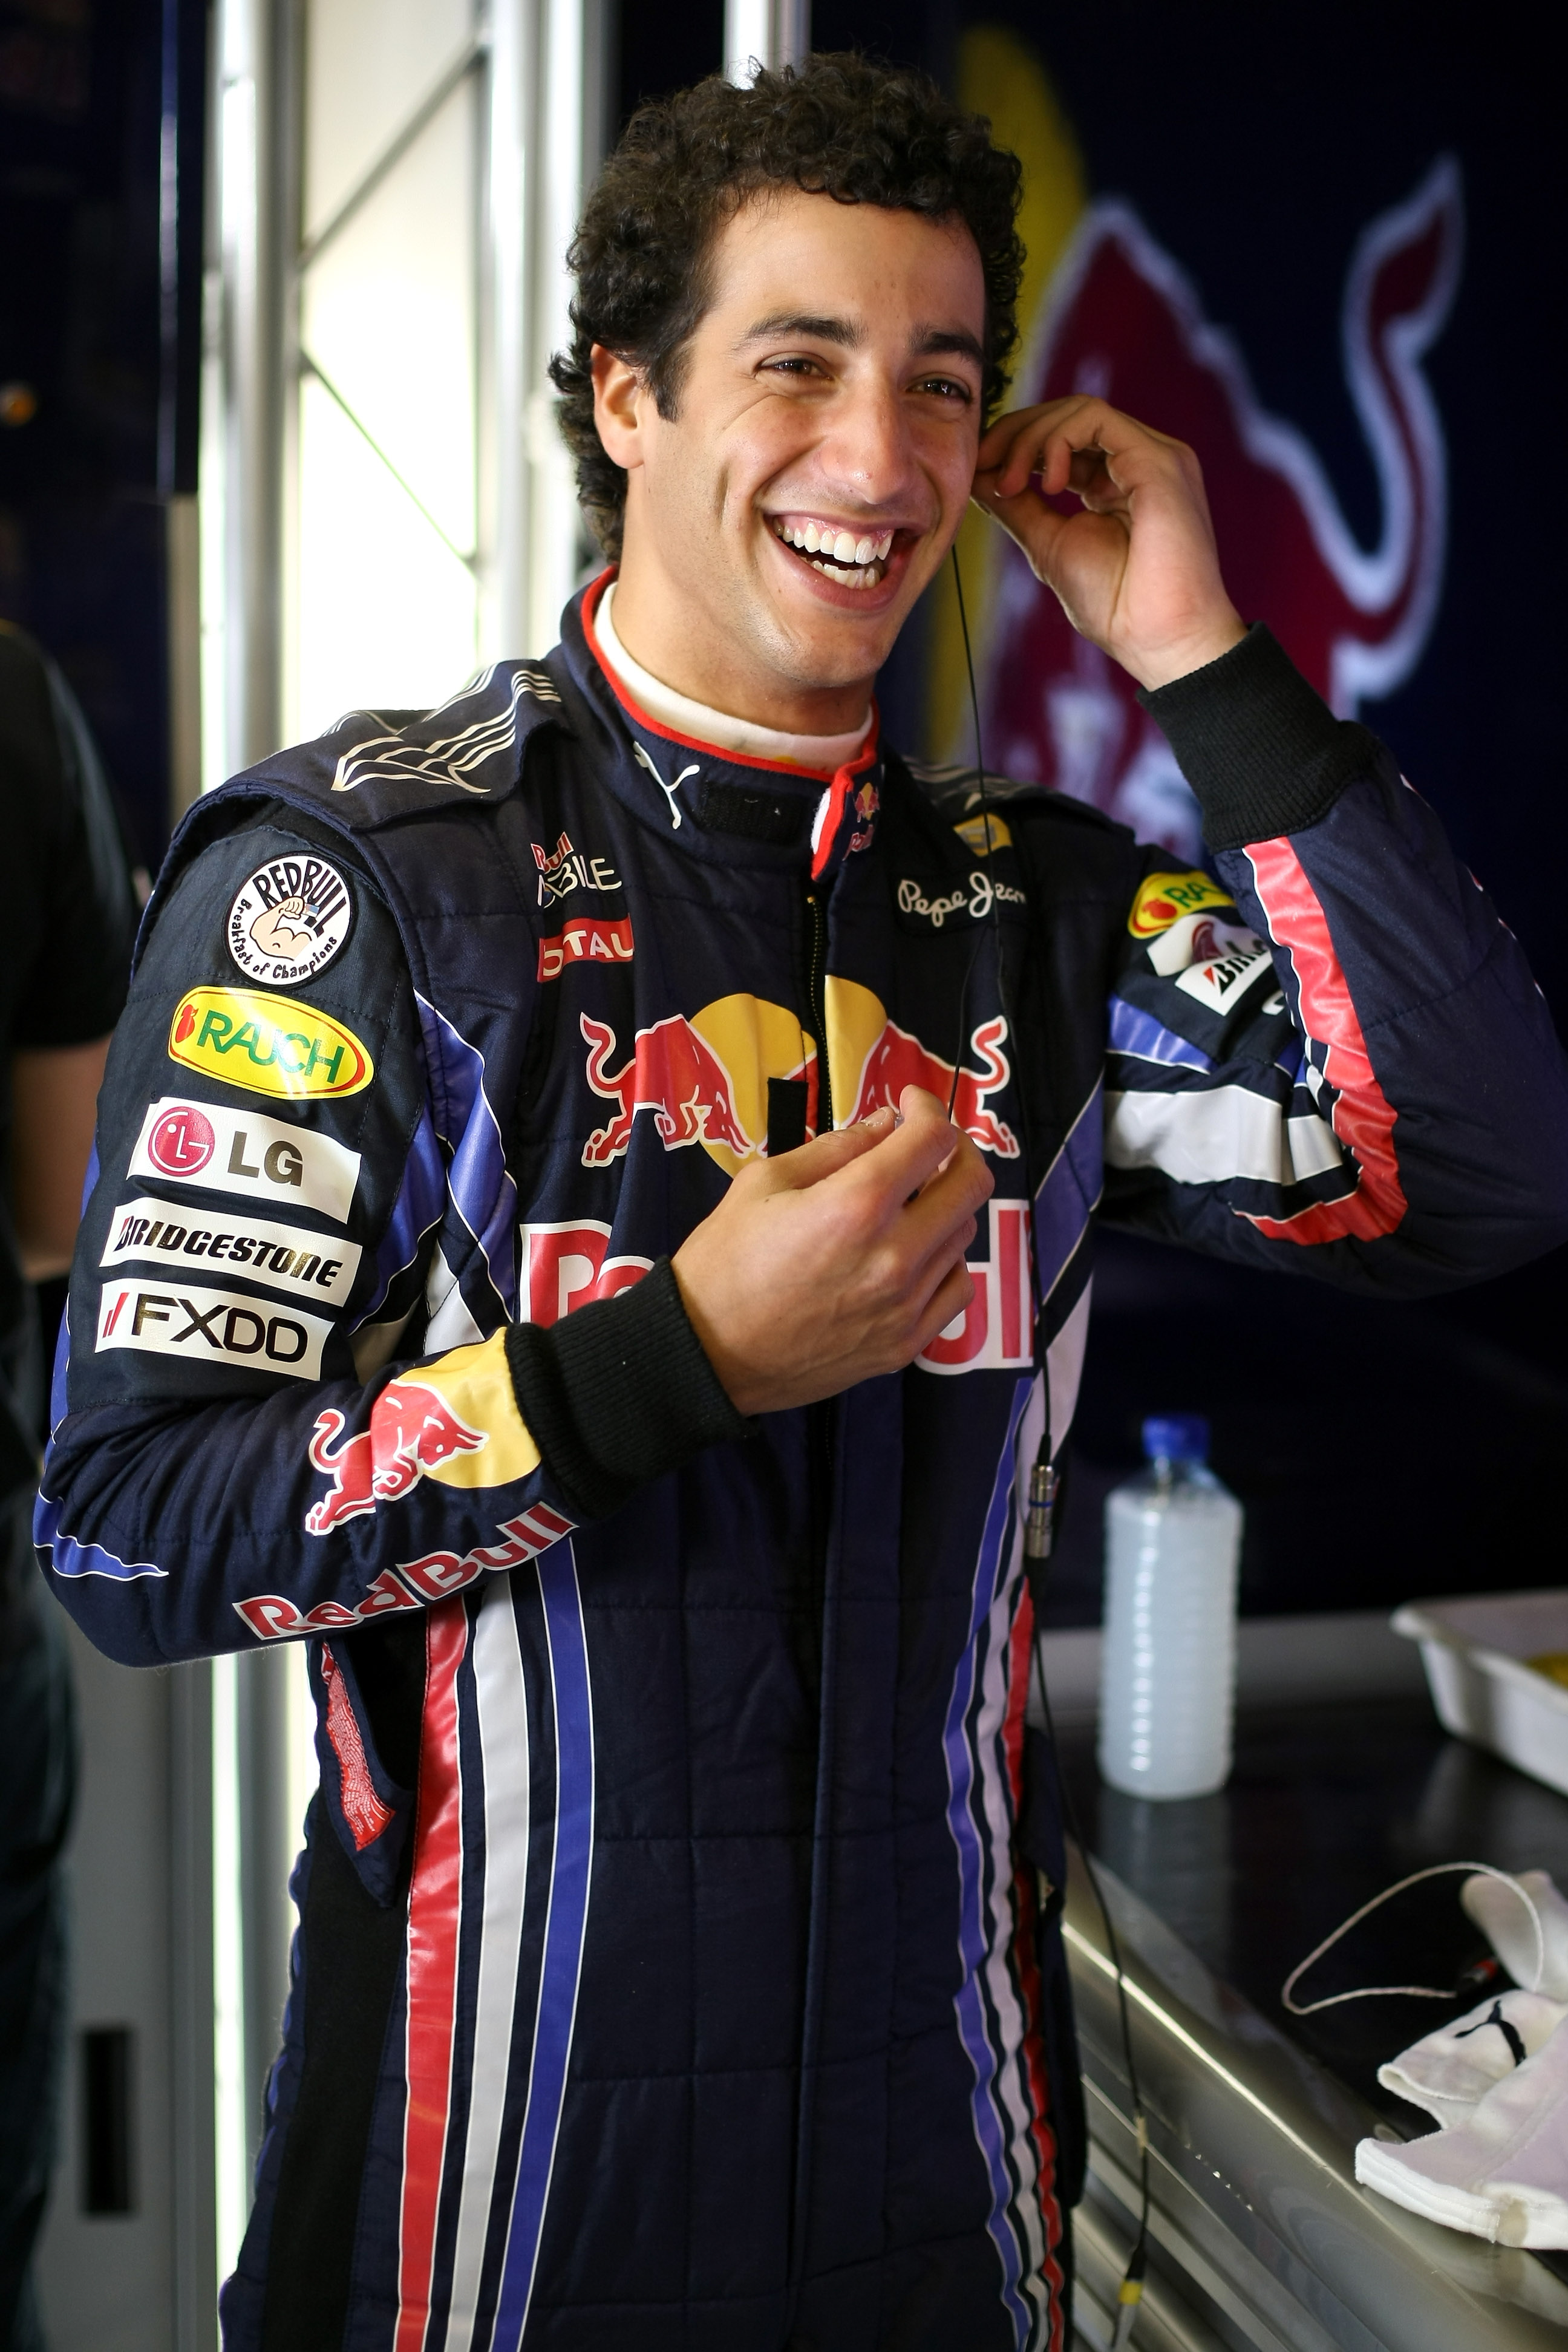 ABU DHABI, UNITED ARAB EMIRATES - NOVEMBER 17:  Daniel Ricciardo of Australia and Red Bull Racing prepares to go out on track during the Young Driver Testing at the Yas Marina Circuit on November 17, 2010 in Abu Dhabi, United Arab Emirates.  (Photo by And